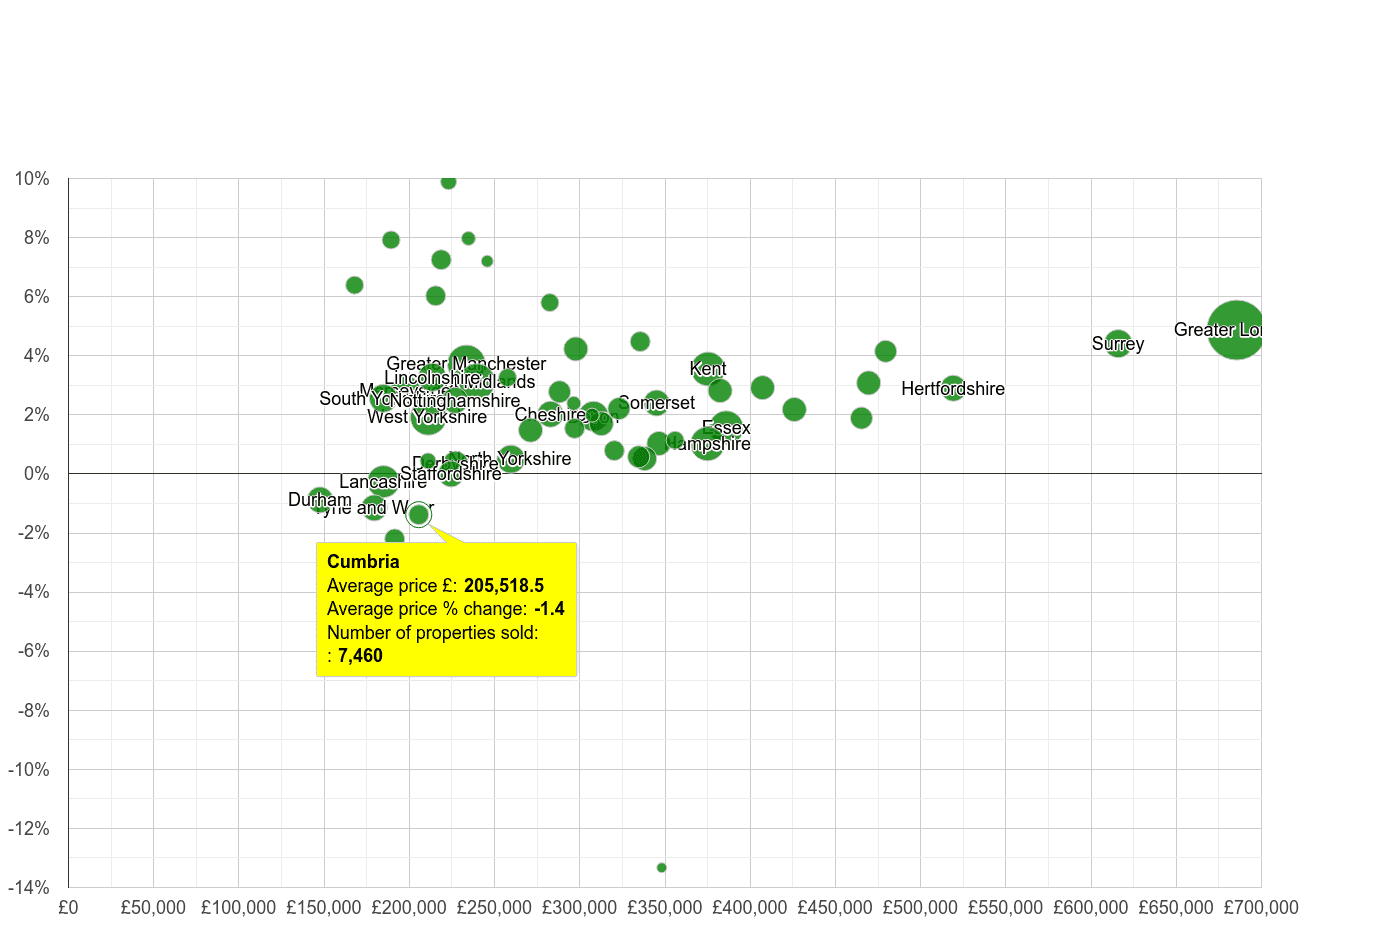 Cumbria house prices compared to other counties